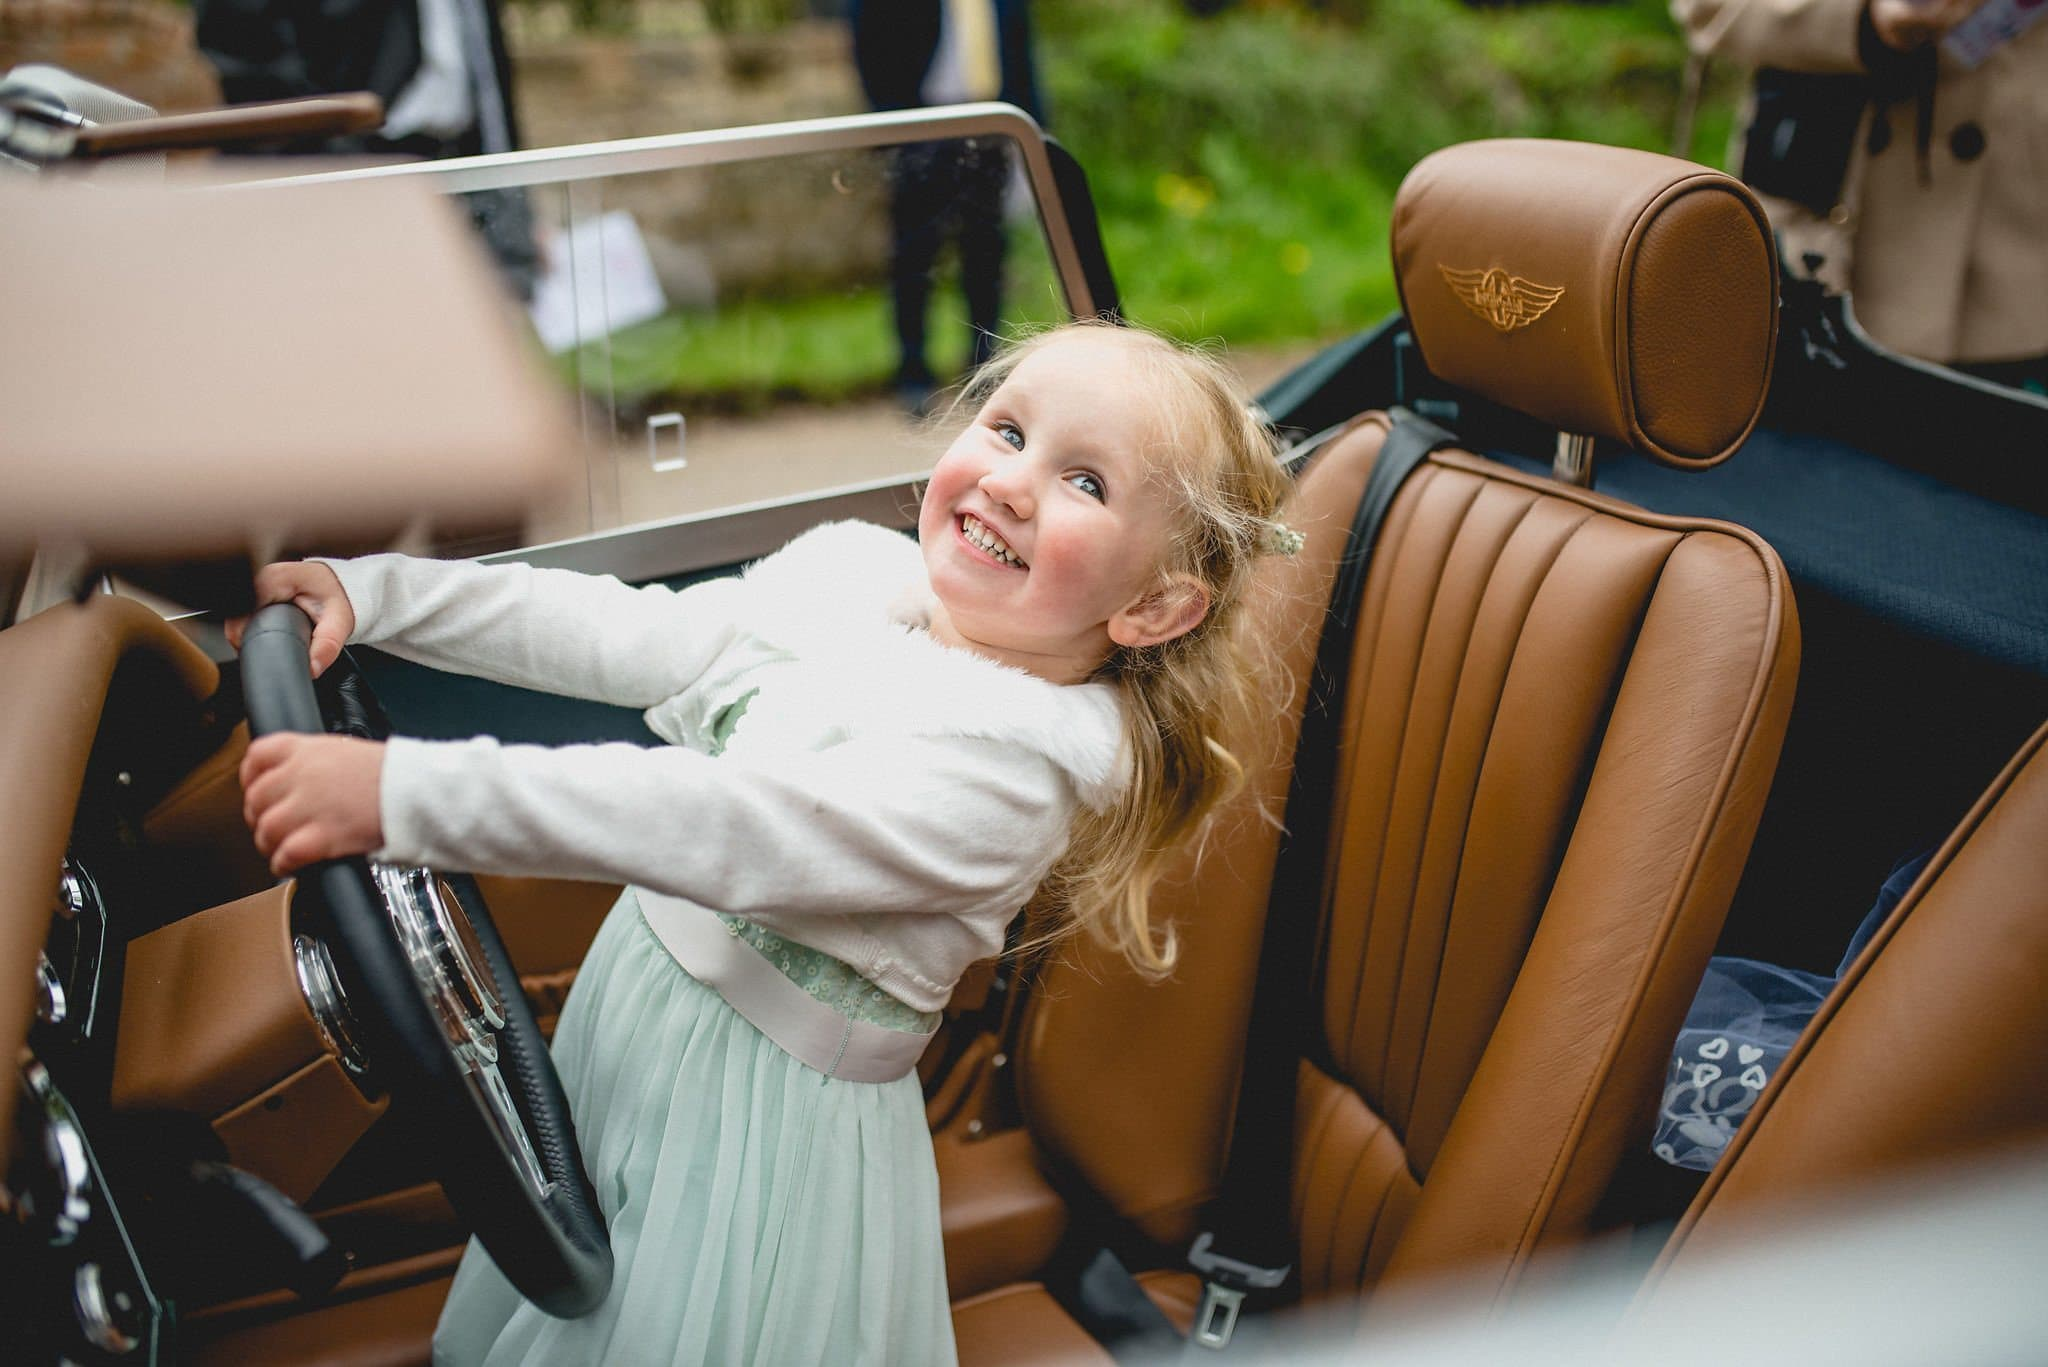 The couple's daughter looks cheeky in her mint green flower girl dress as she pretends to drive the wedding car